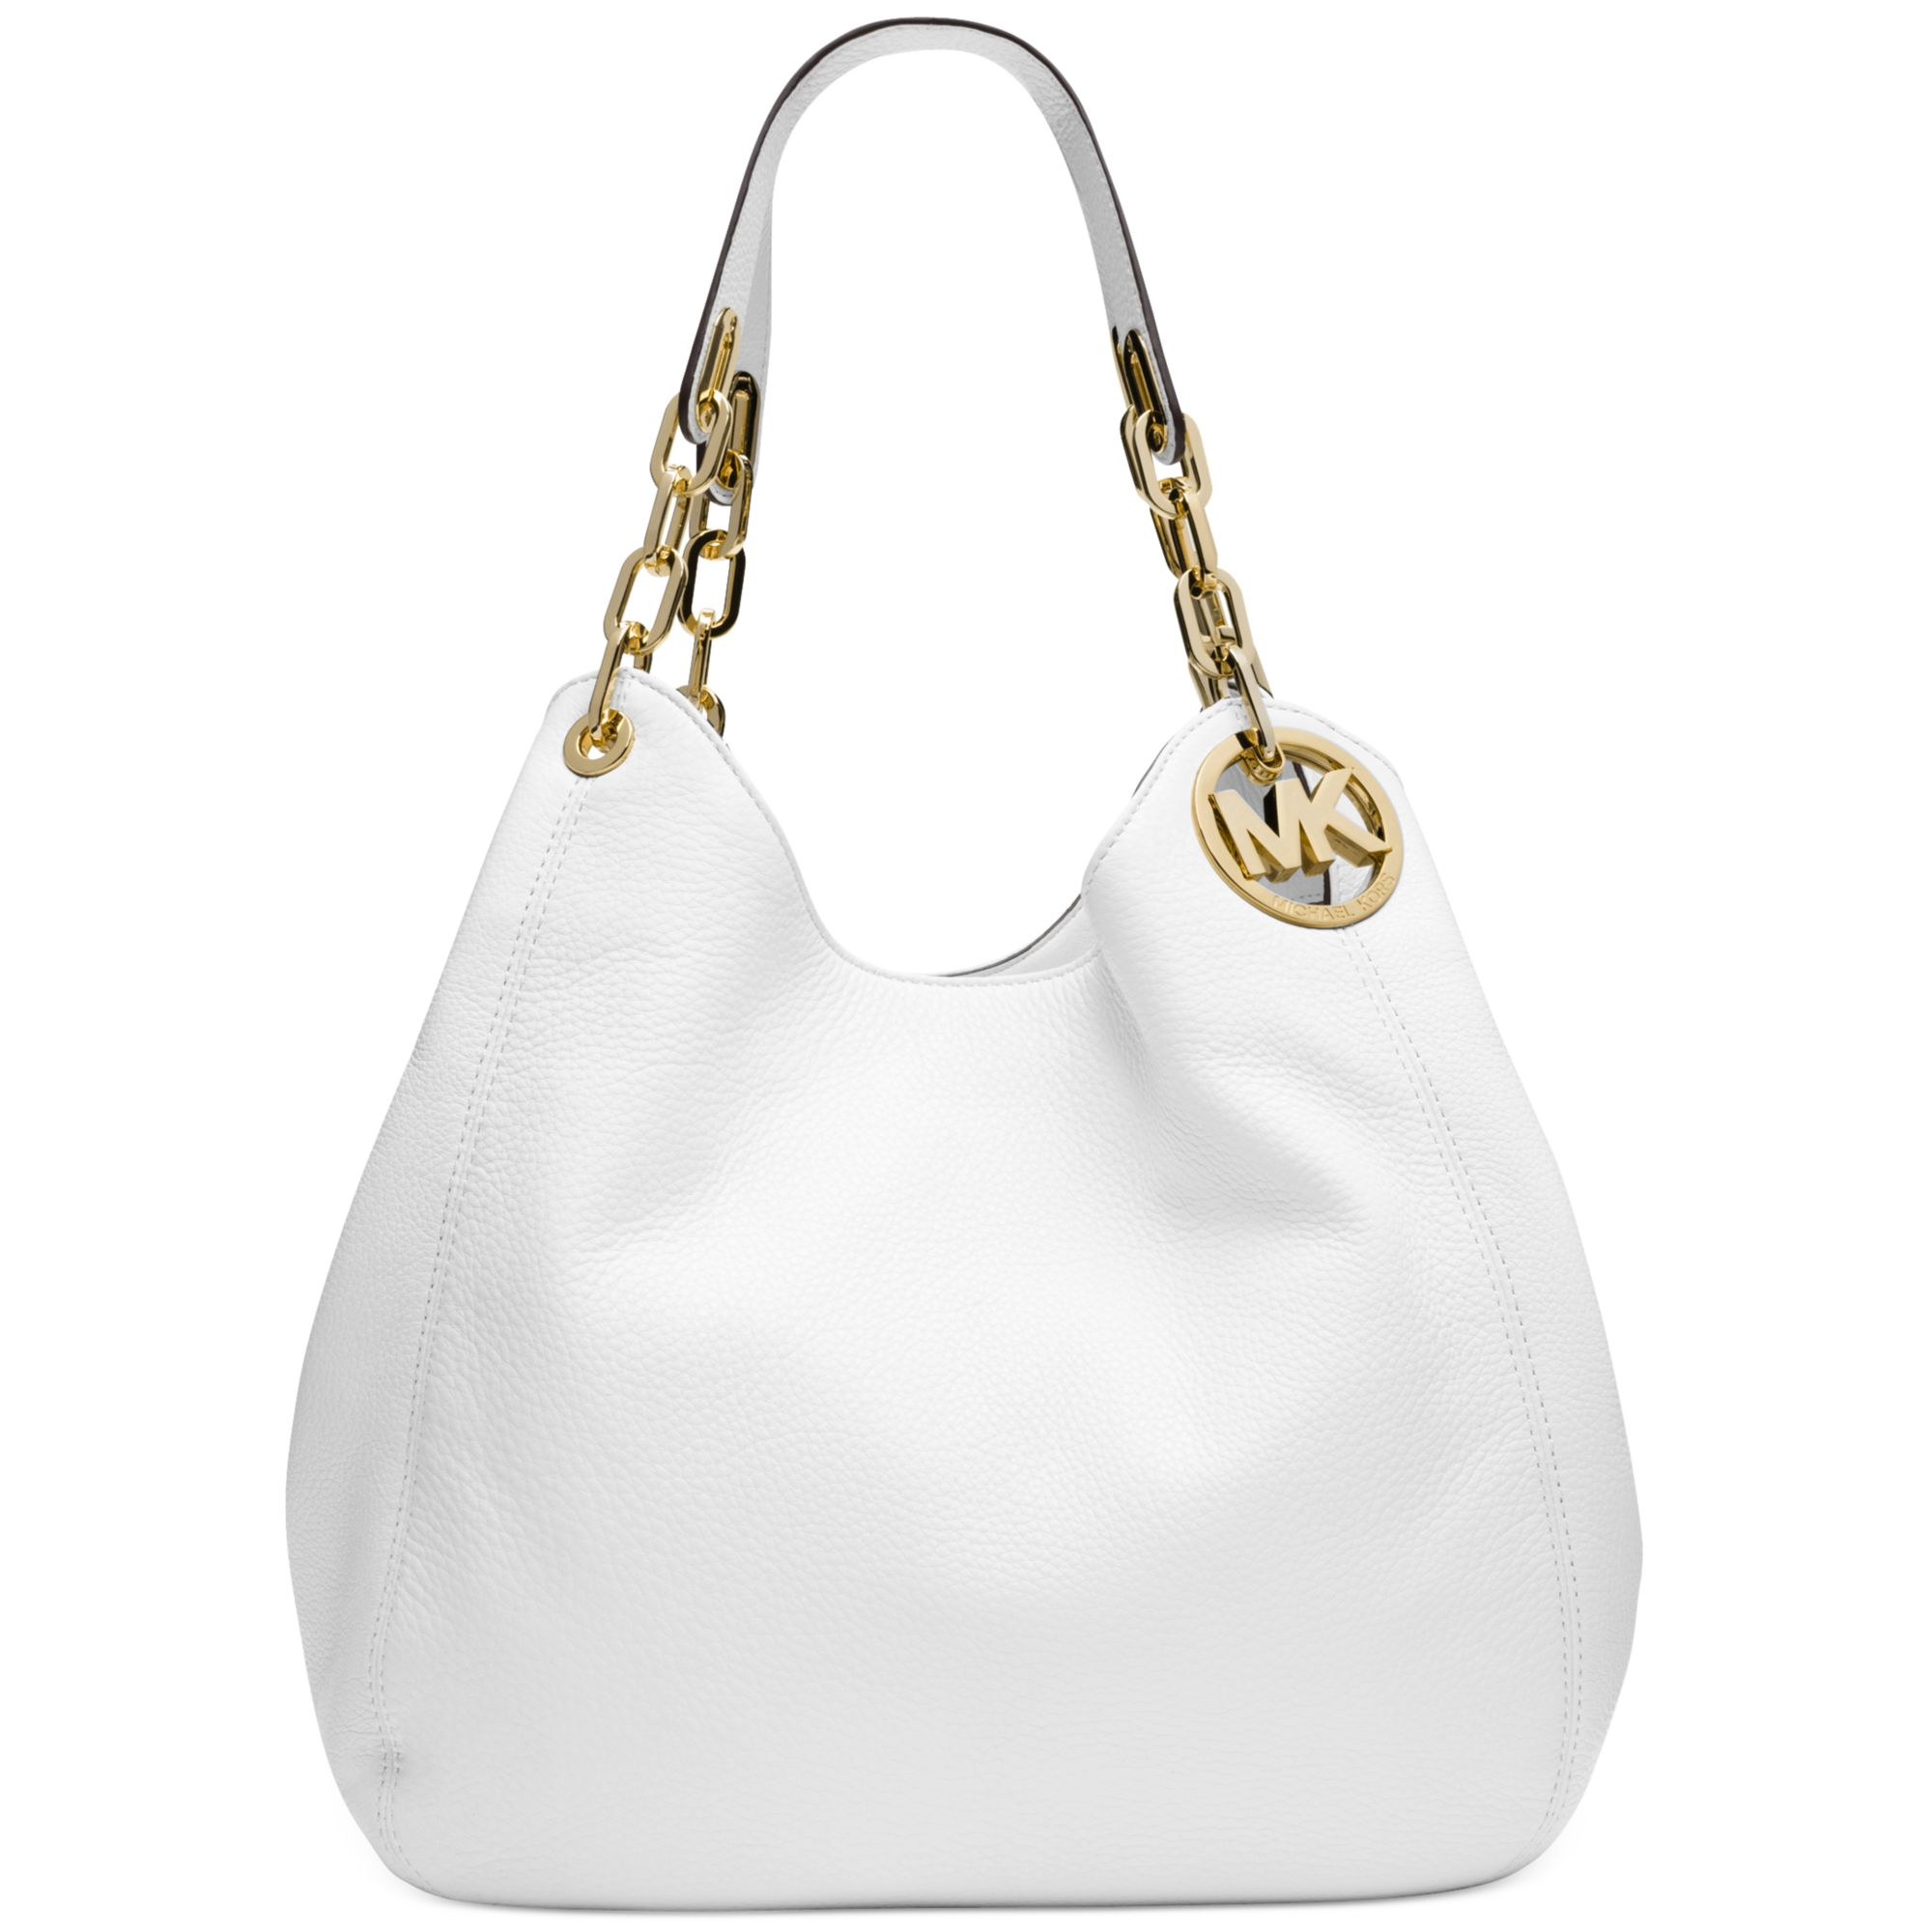 b39bdacb6730 ... best lyst michael kors michael fulton large shoulder tote in white  26d56 847d0